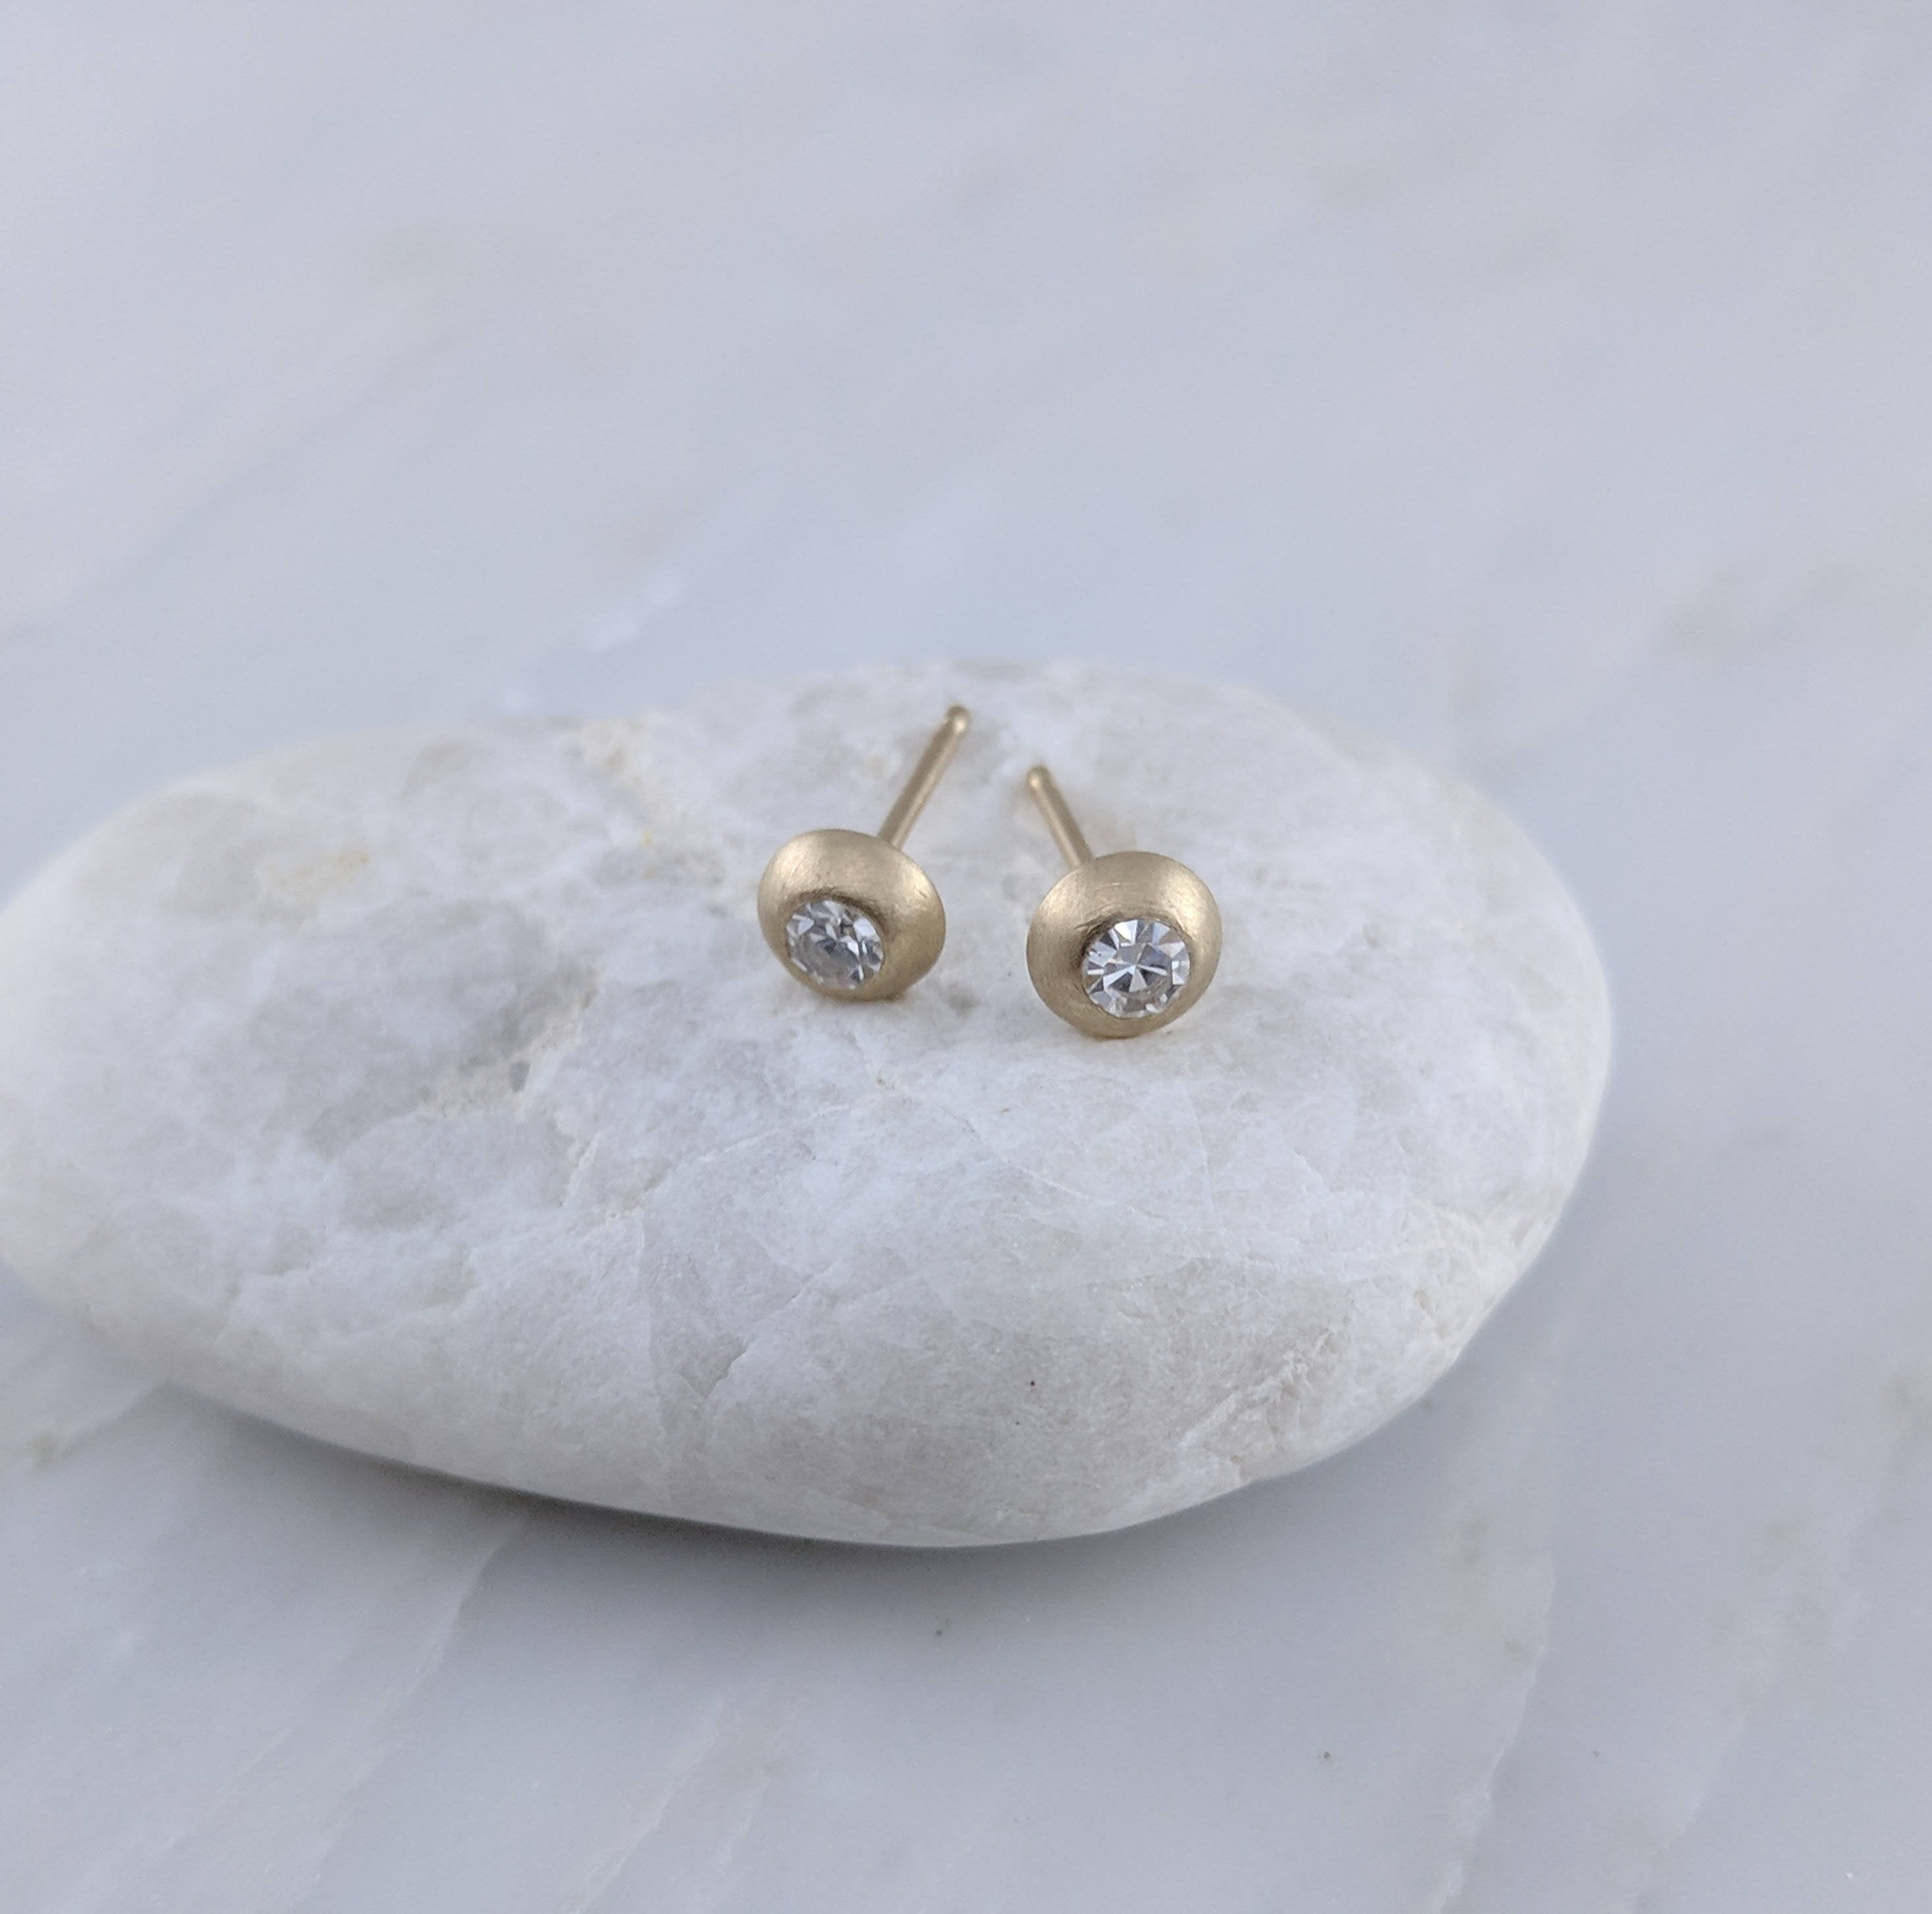 Round Diamond Stud Earrings in 14K Yellow Gold